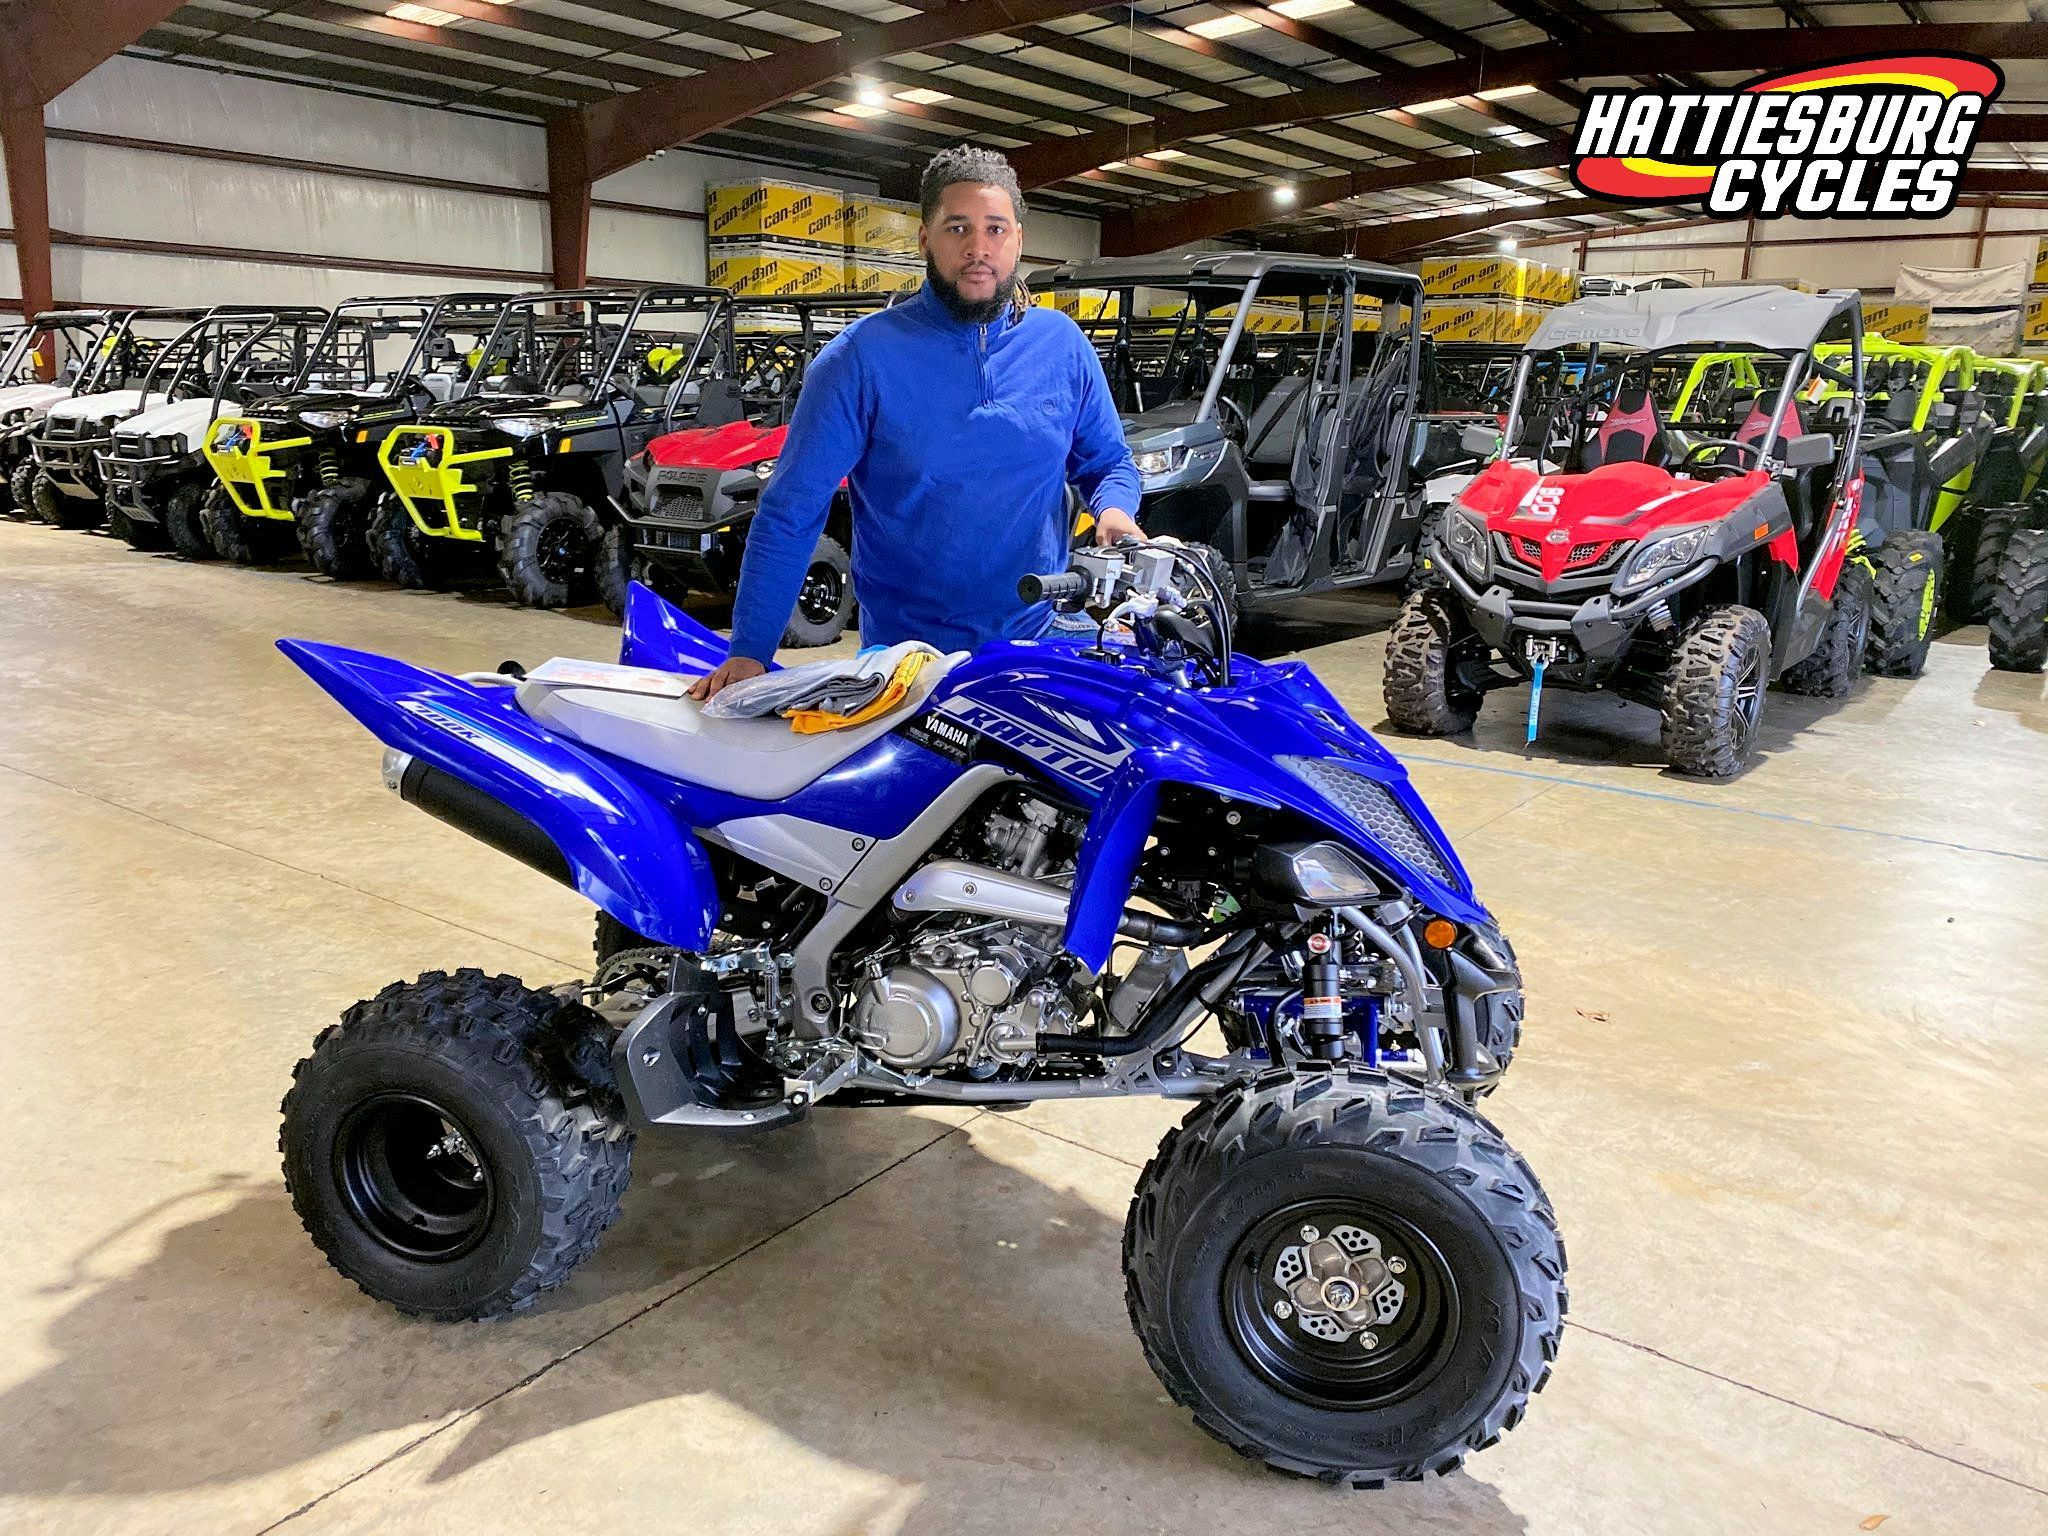 Congratulations To Tevin Campbell From Decatur Ms For Purchasing A 2020 Yamaha Raptor 700 R At Hattiesburg Cycles Ya Yamaha Raptor 700 Dirtbikes Hattiesburg